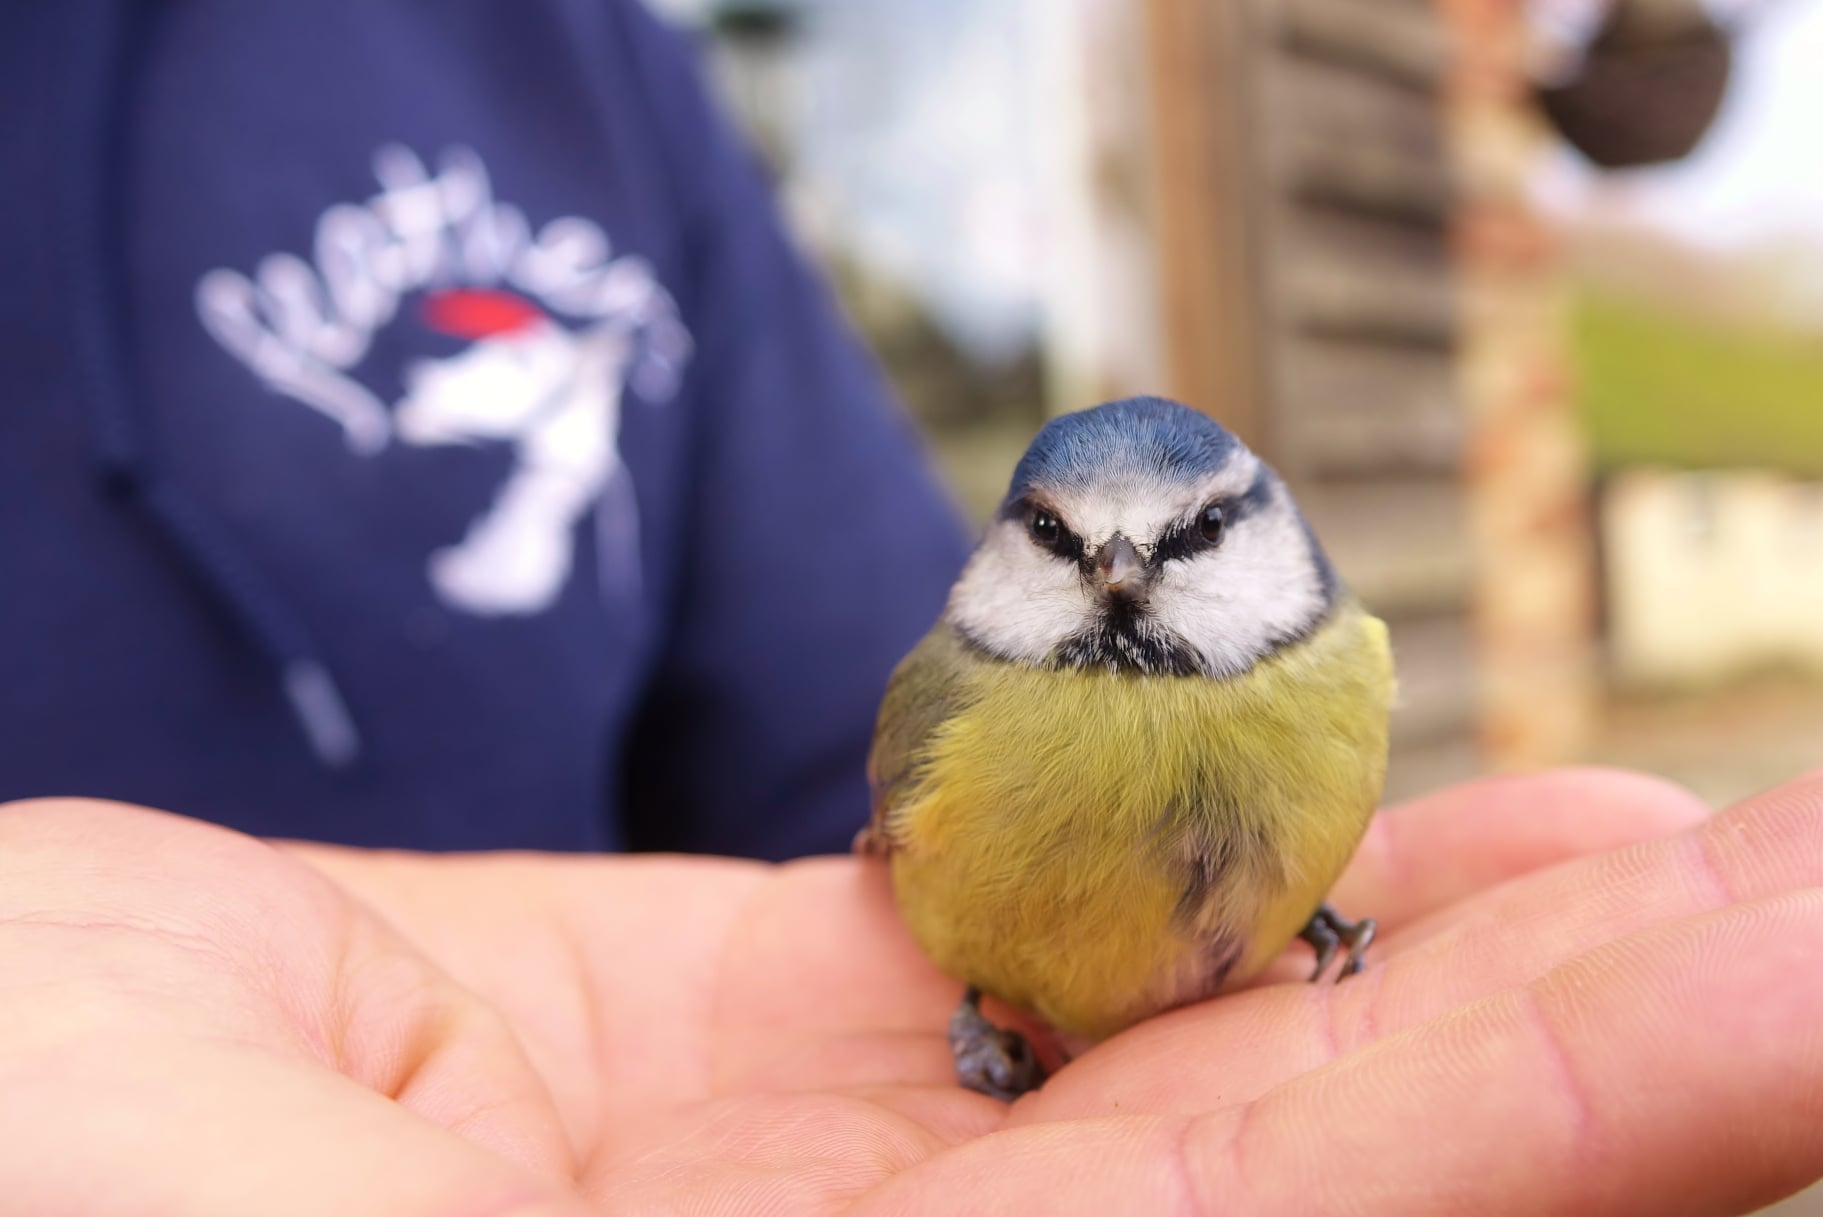 A happy ending for this beautiful blue tit who bumped in to the shop window. A few minutes respite before it perked up and took off. https://t.co/tgzad4iQzs